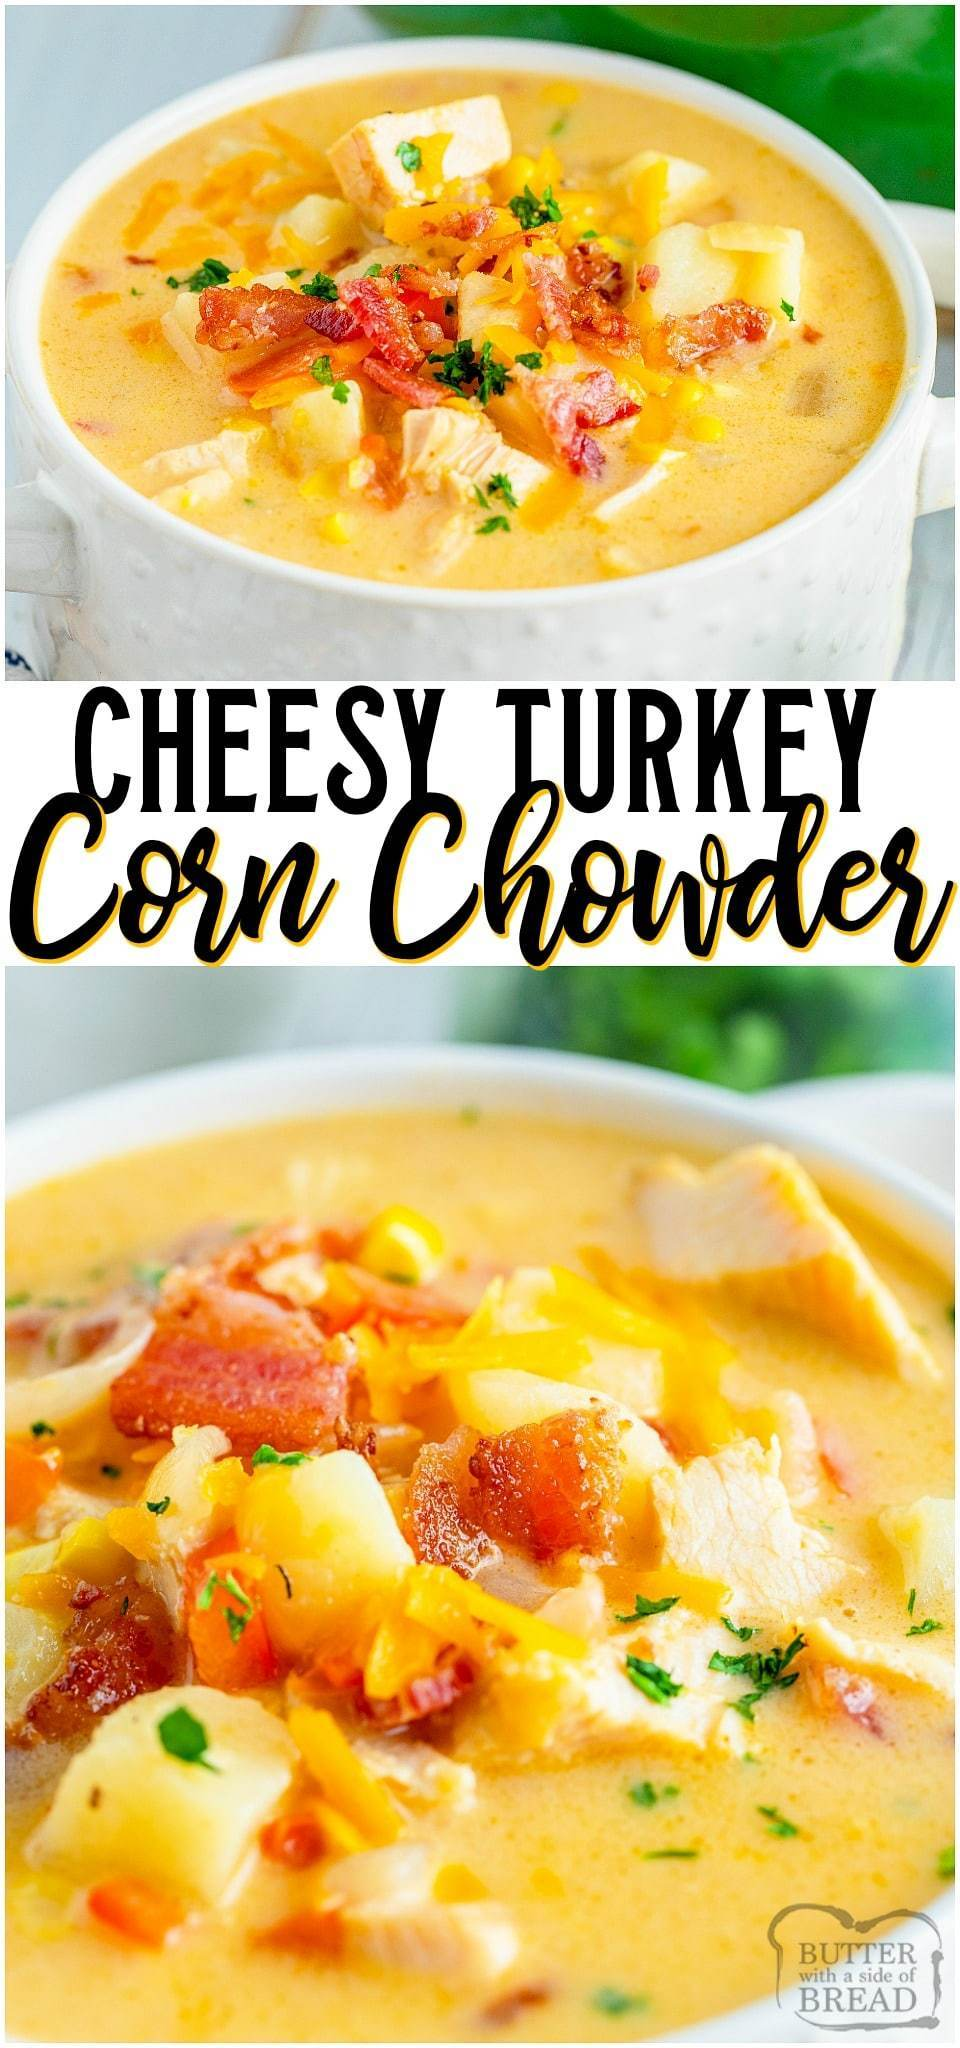 Leftover Turkey Chowder is a creamy, cheesy soup recipe made with leftover turkey, bacon, corn, and potatoes! Easy homemade corn chowder soup with bright, rich flavor for the perfect comfort food.